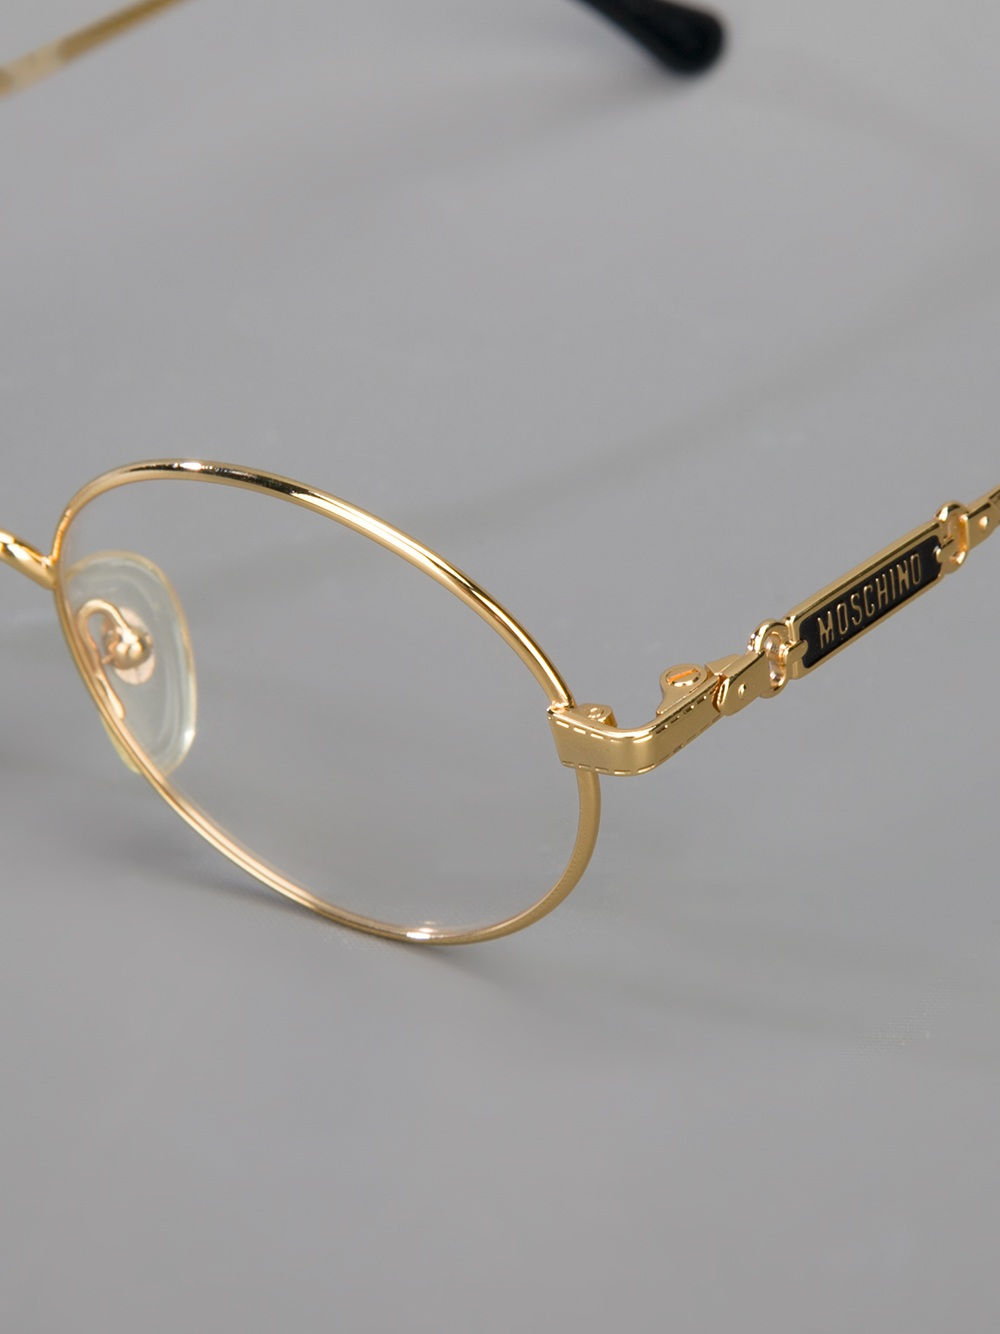 Gold Frame Vintage Glasses : Moschino Round Frame Glasses in Metallic Lyst